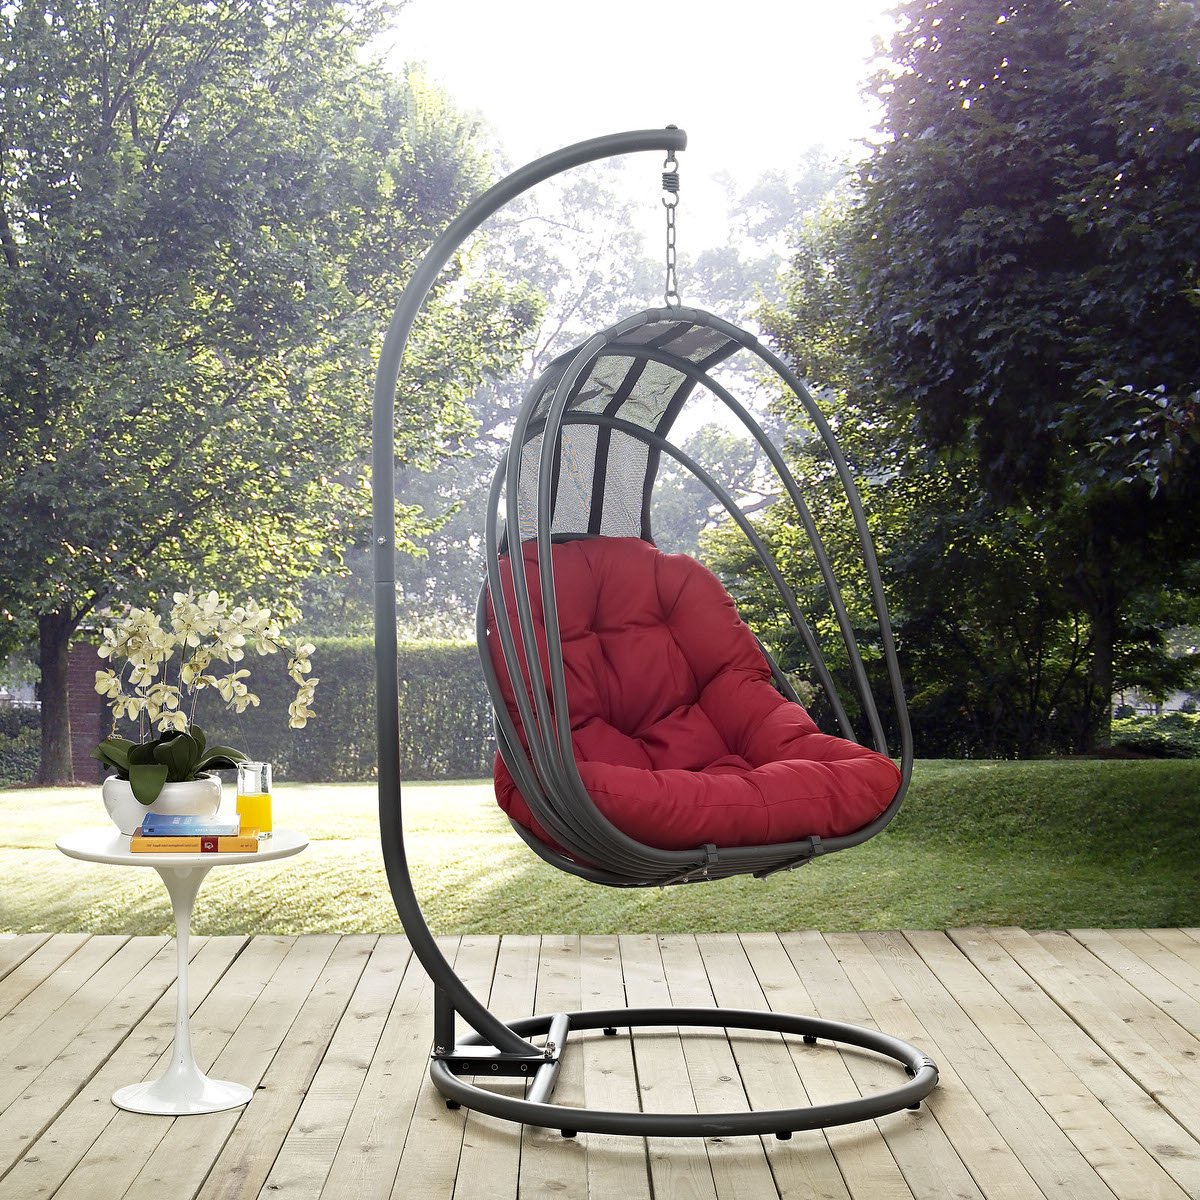 Outdoor Pvc Coated Polyester Porch Swings With Stand Inside Well Known Whisk Outdoor Patio Swing Chair With Stand Redmodern Living (View 29 of 30)